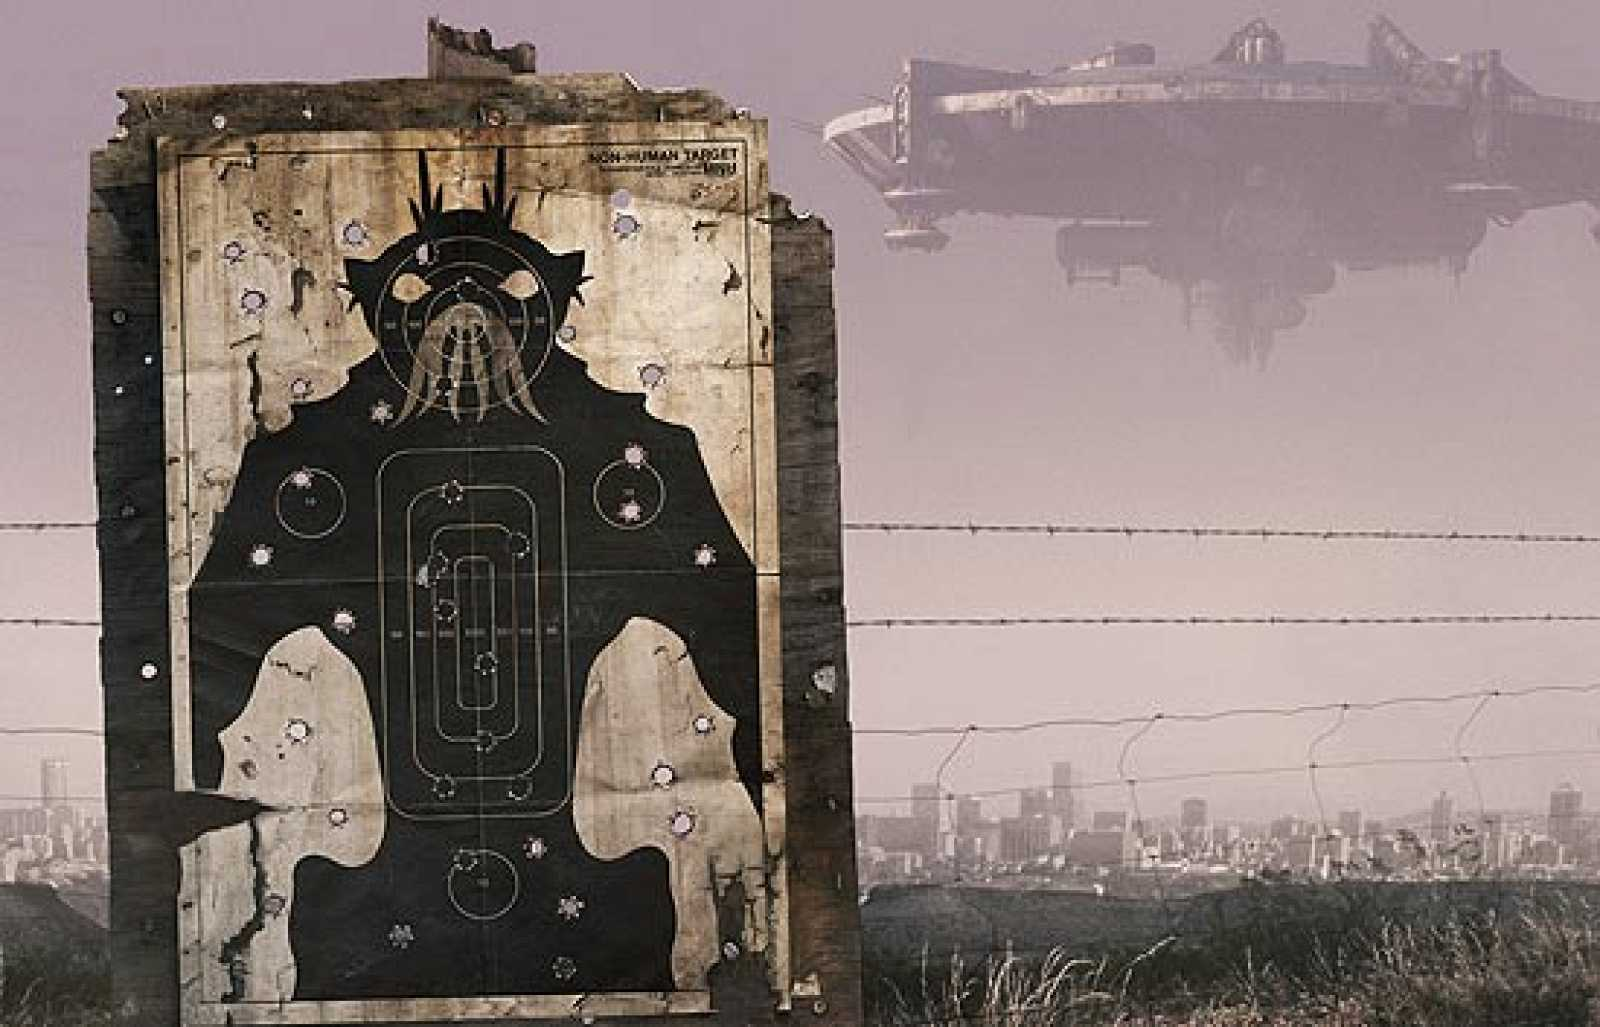 secuela, Sector 9, District 10, Neill Blomkamp